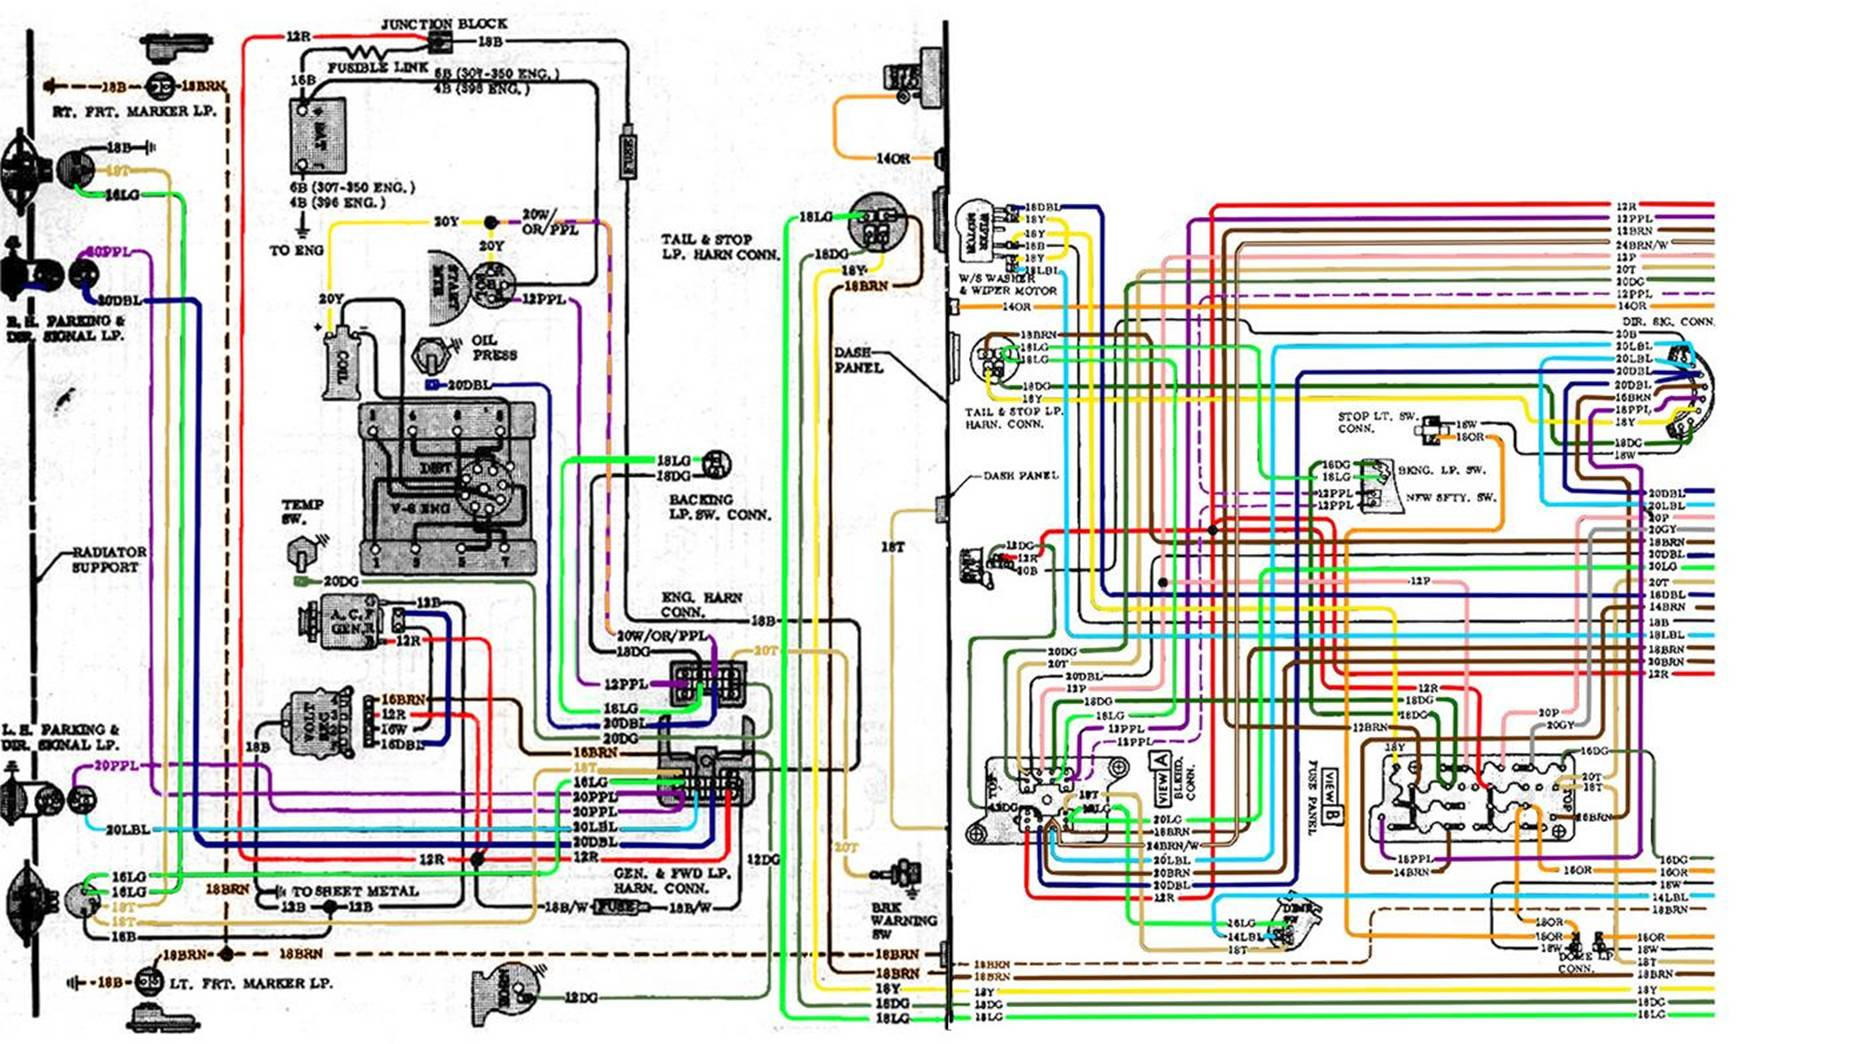 hight resolution of 67 72 chevy wiring diagram wiring diagram for 2010 camaro wiring diagram for 1967 chevelle